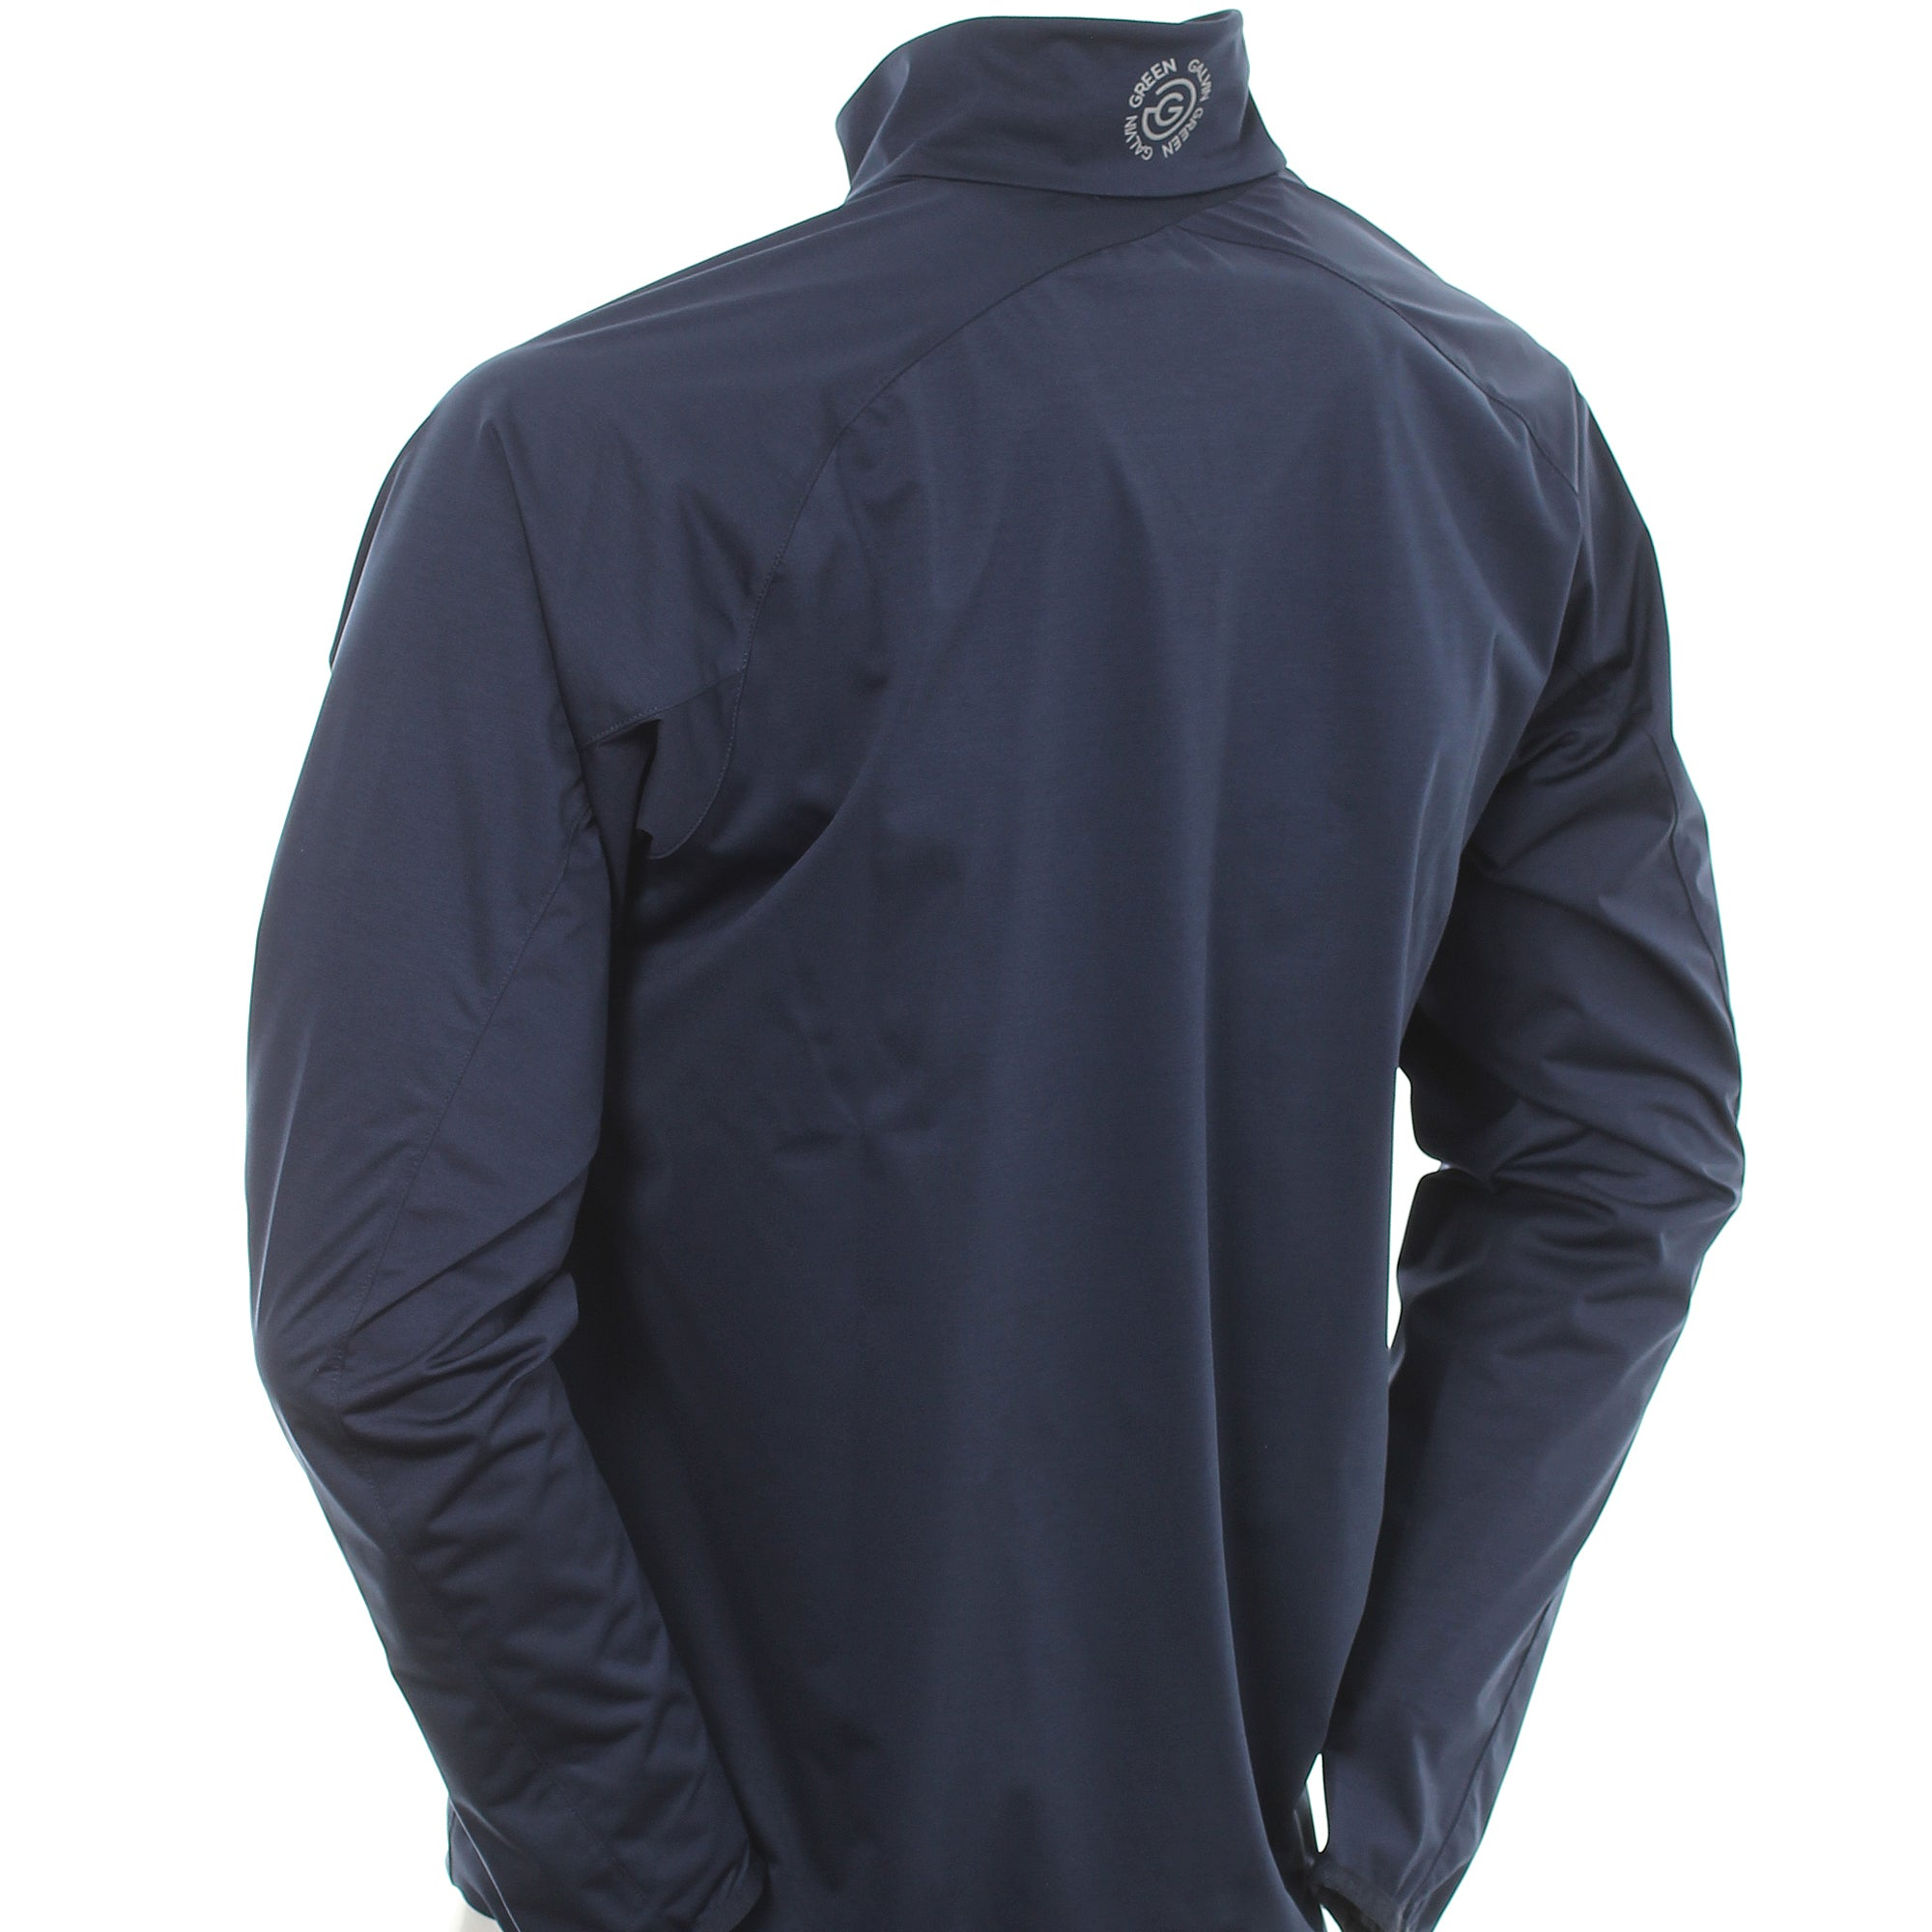 Galvin Green Lincoln Interface-1 Golf Jacket